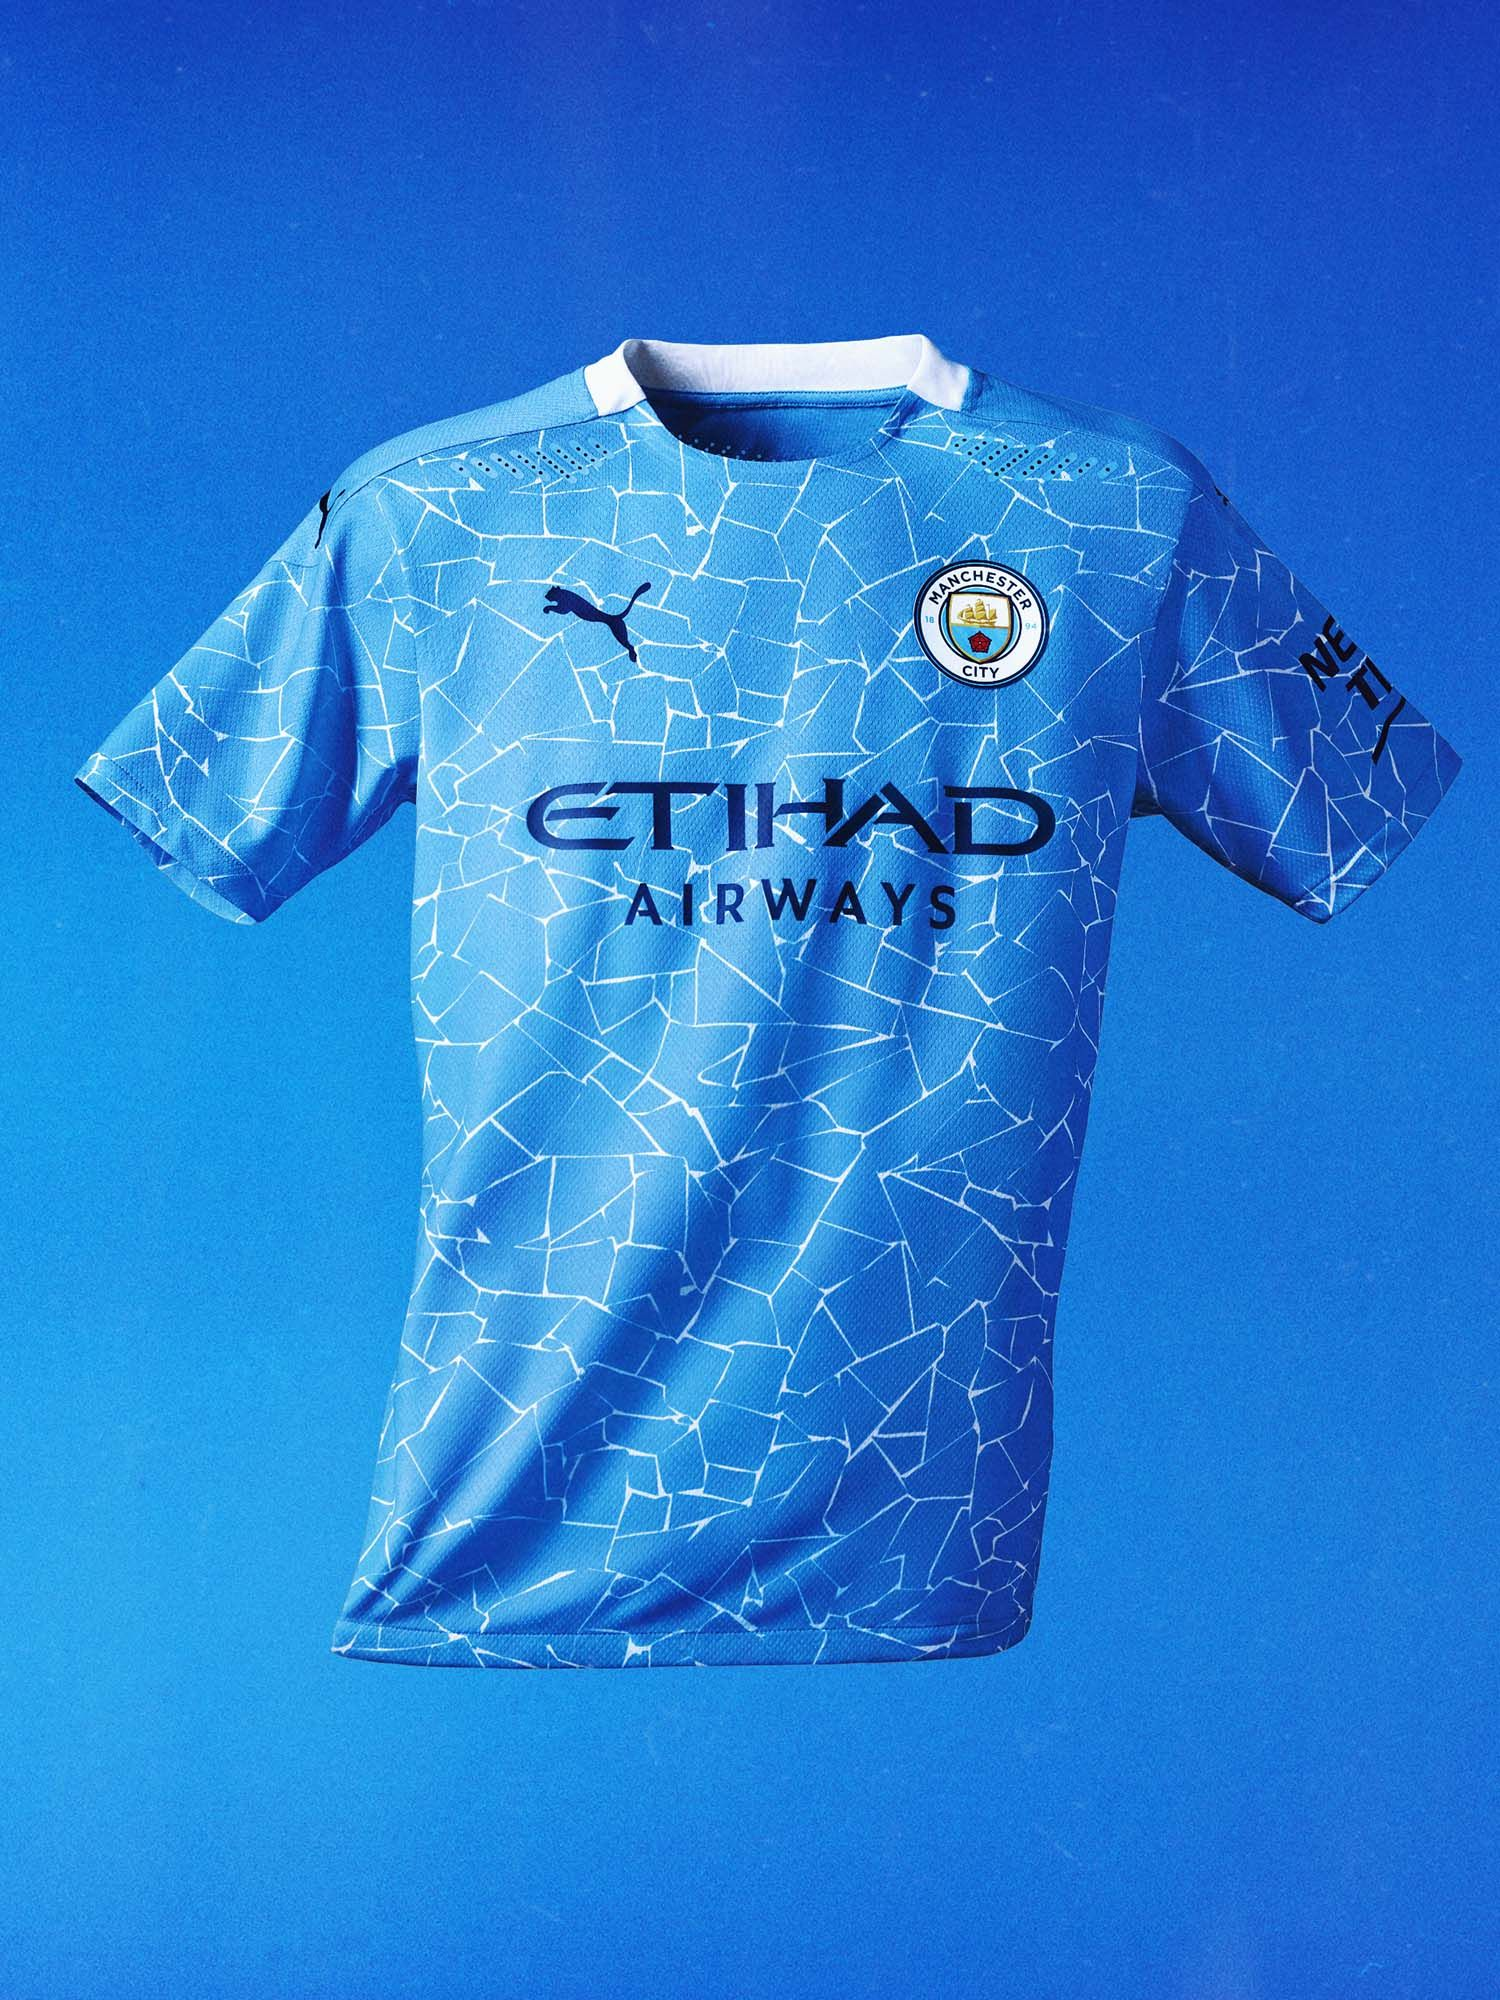 Puma Launch Manchester City 20 21 Home Shirt Soccerbible In 2021 Manchester City Man City New Kit Manchester City Wallpaper